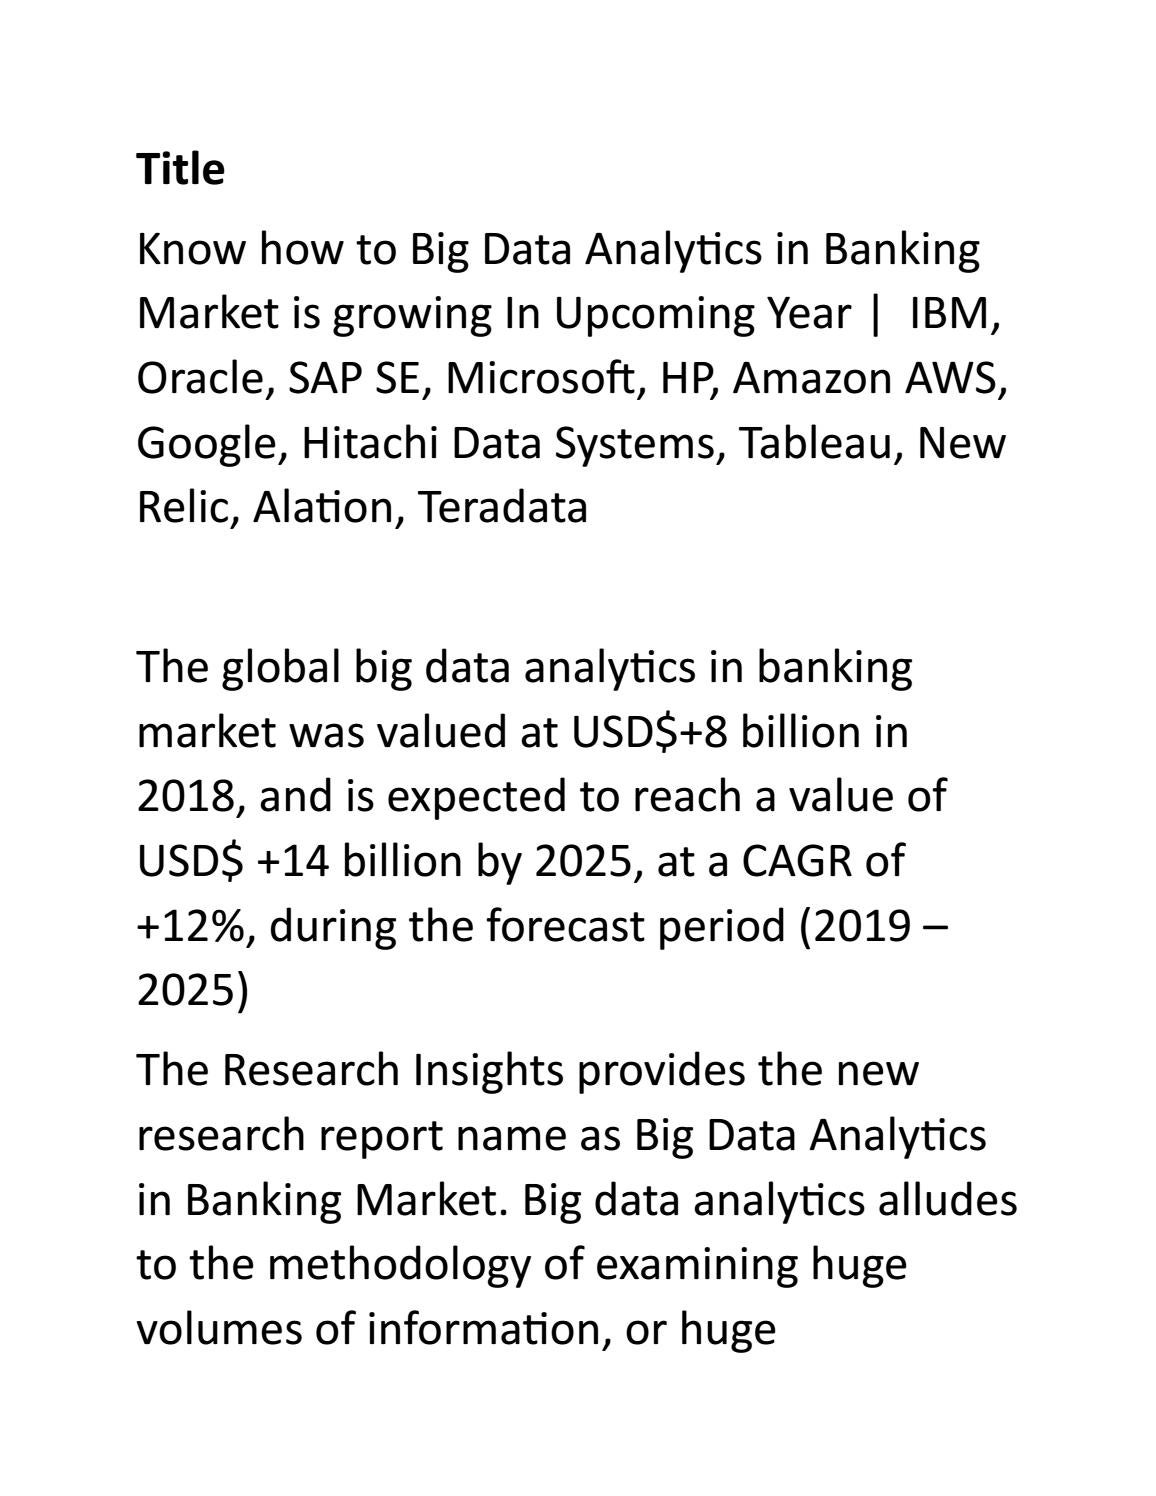 Know how to Big Data Analytics in Banking Market by Kiran